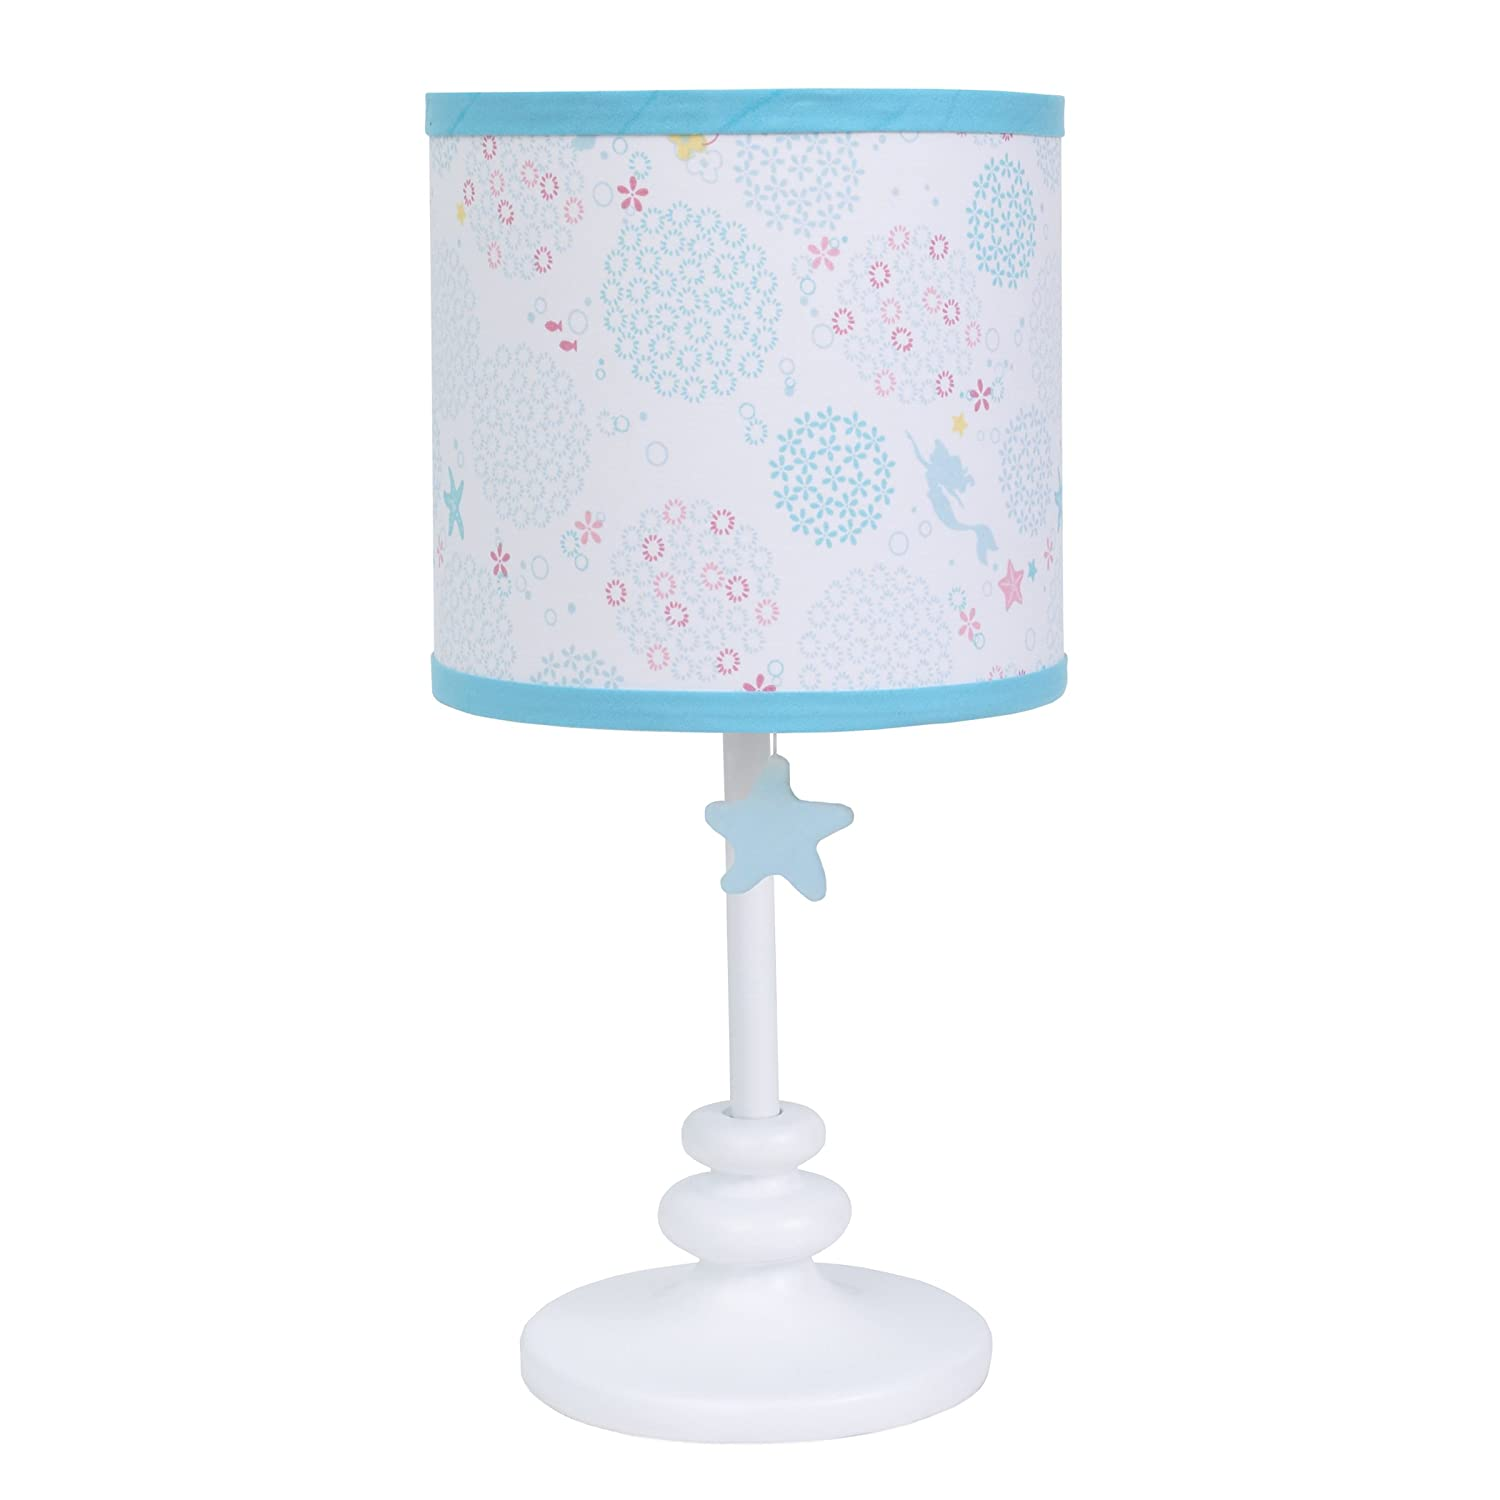 Disney Minnie Mouse Polka Dots Lamp Base and Shade, Light Pink/White/Grey/Bright Raspberry Crown Crafts Inc 6096067